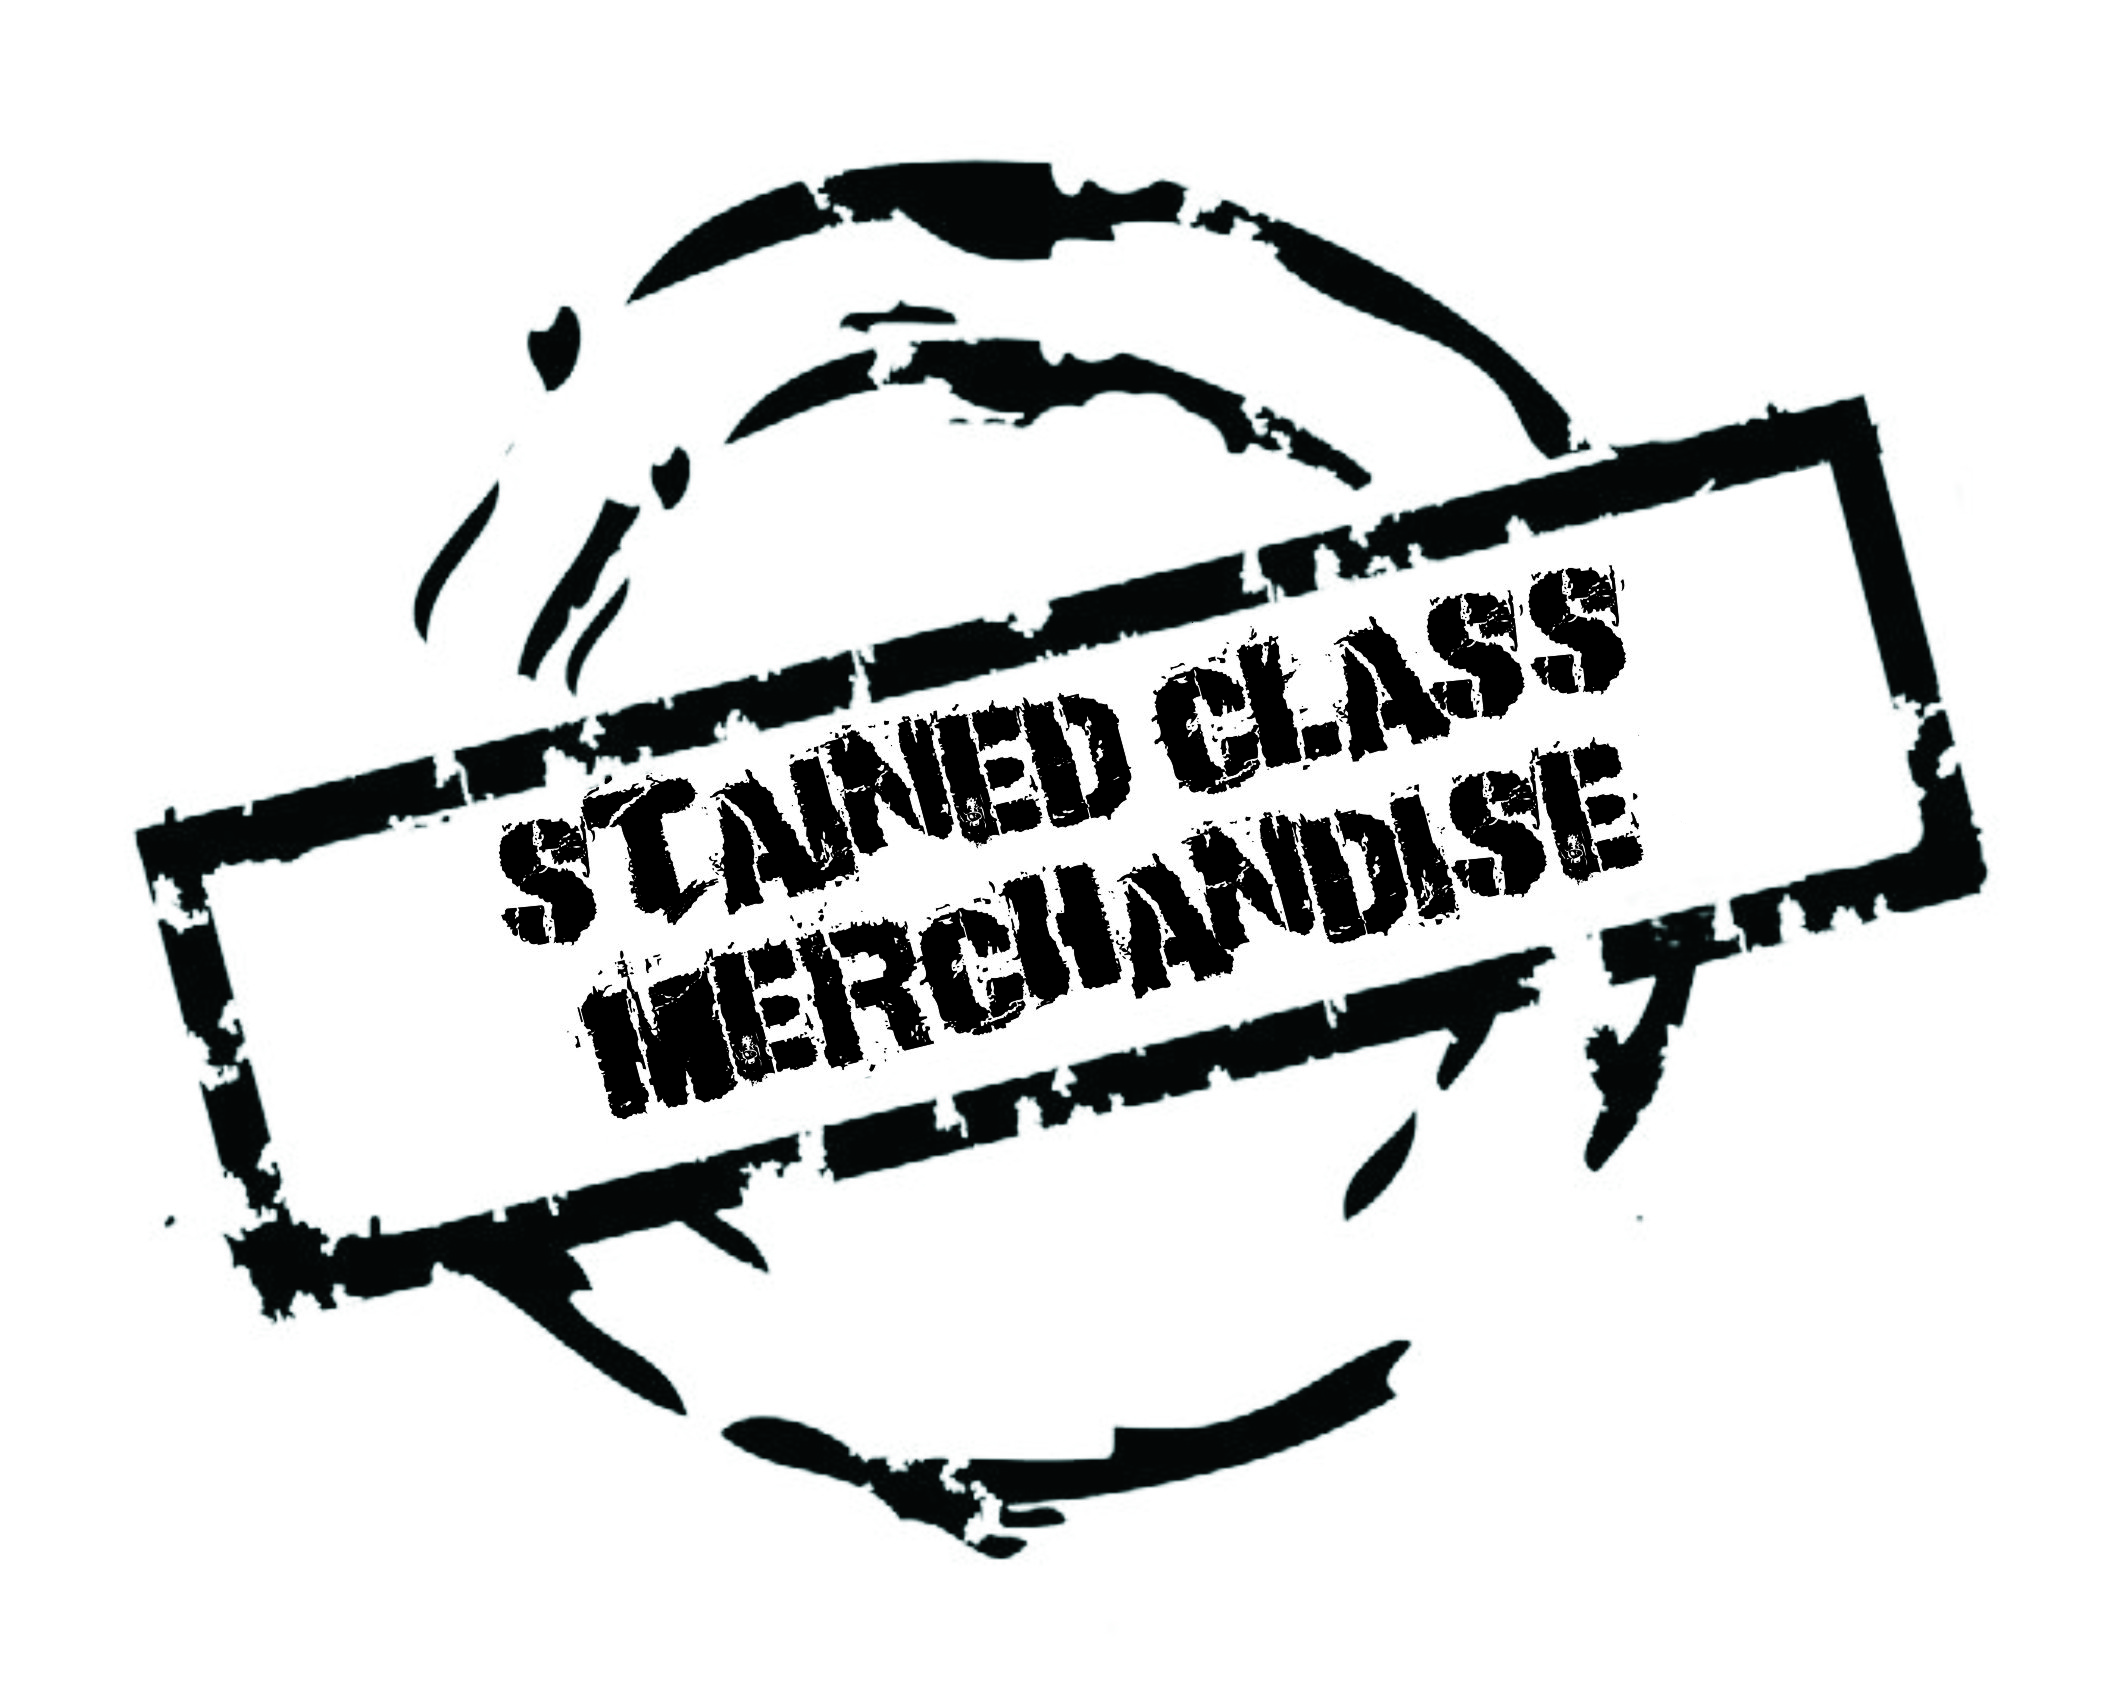 Stained Class Merch